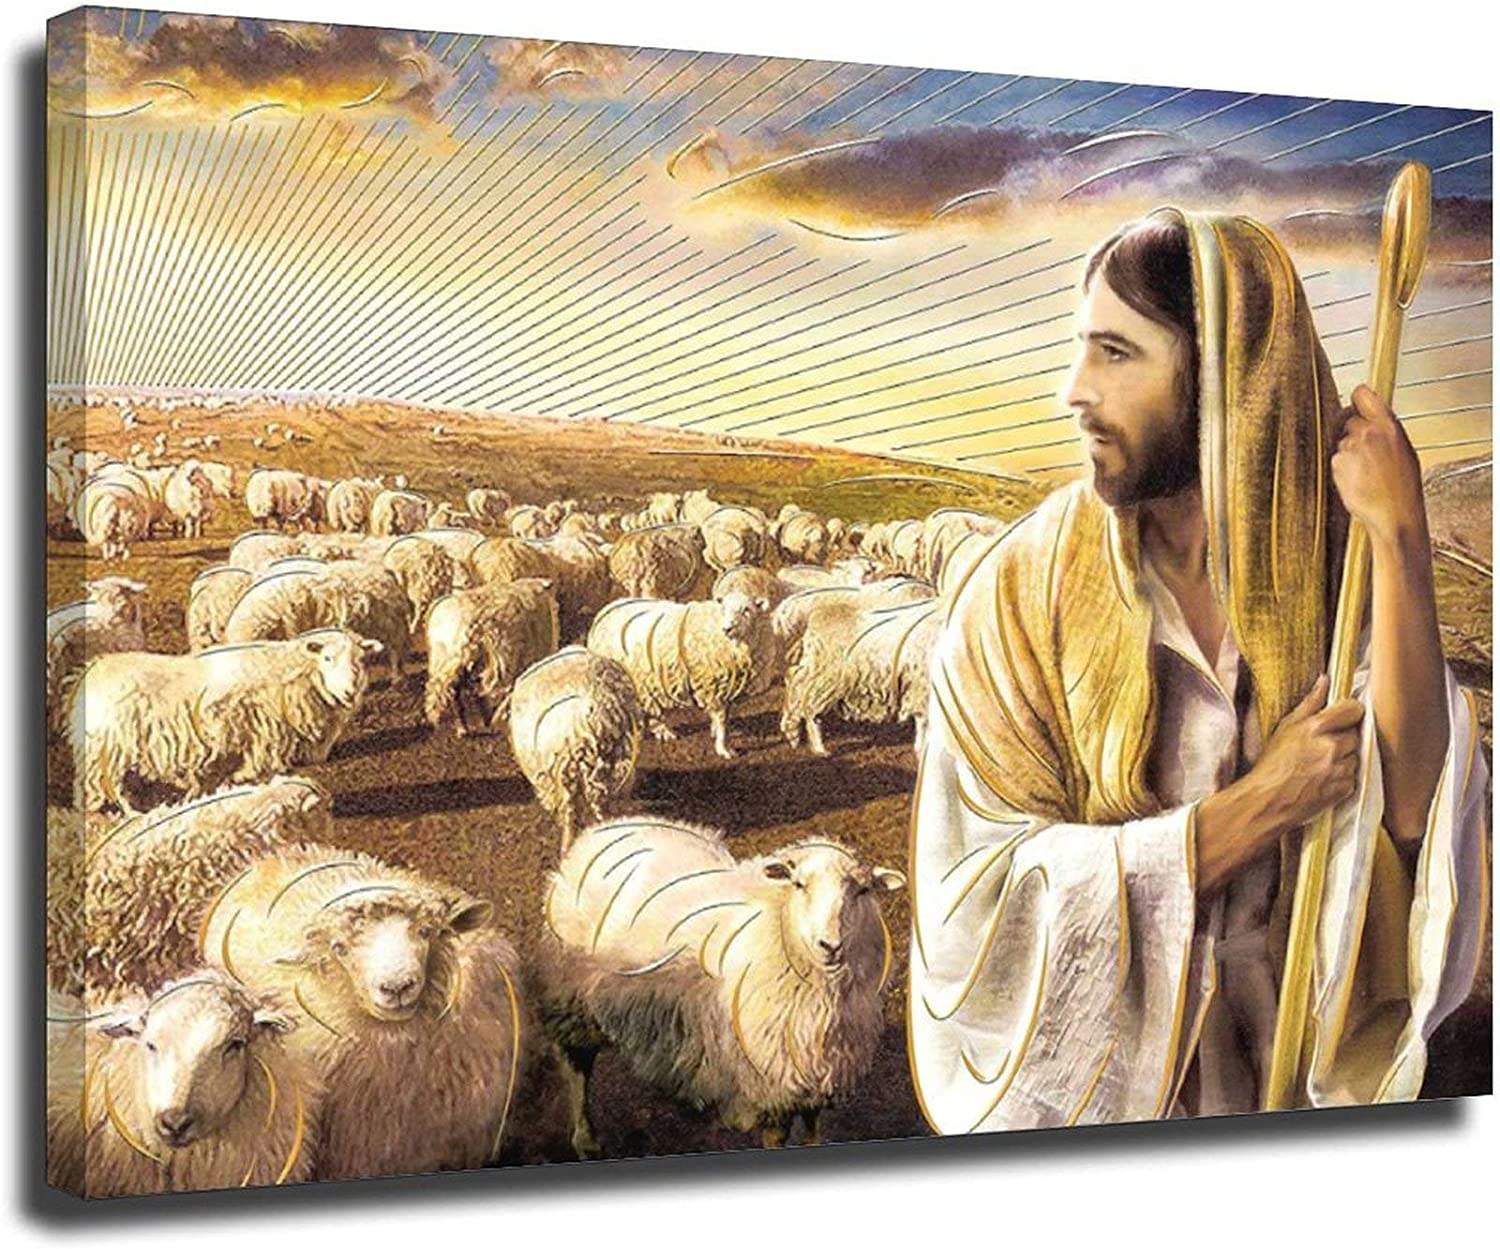 Esus Christ The Lord Is Shepherd 32×48inch Year-end annual account My Unframe-style1 Max 59% OFF 80×